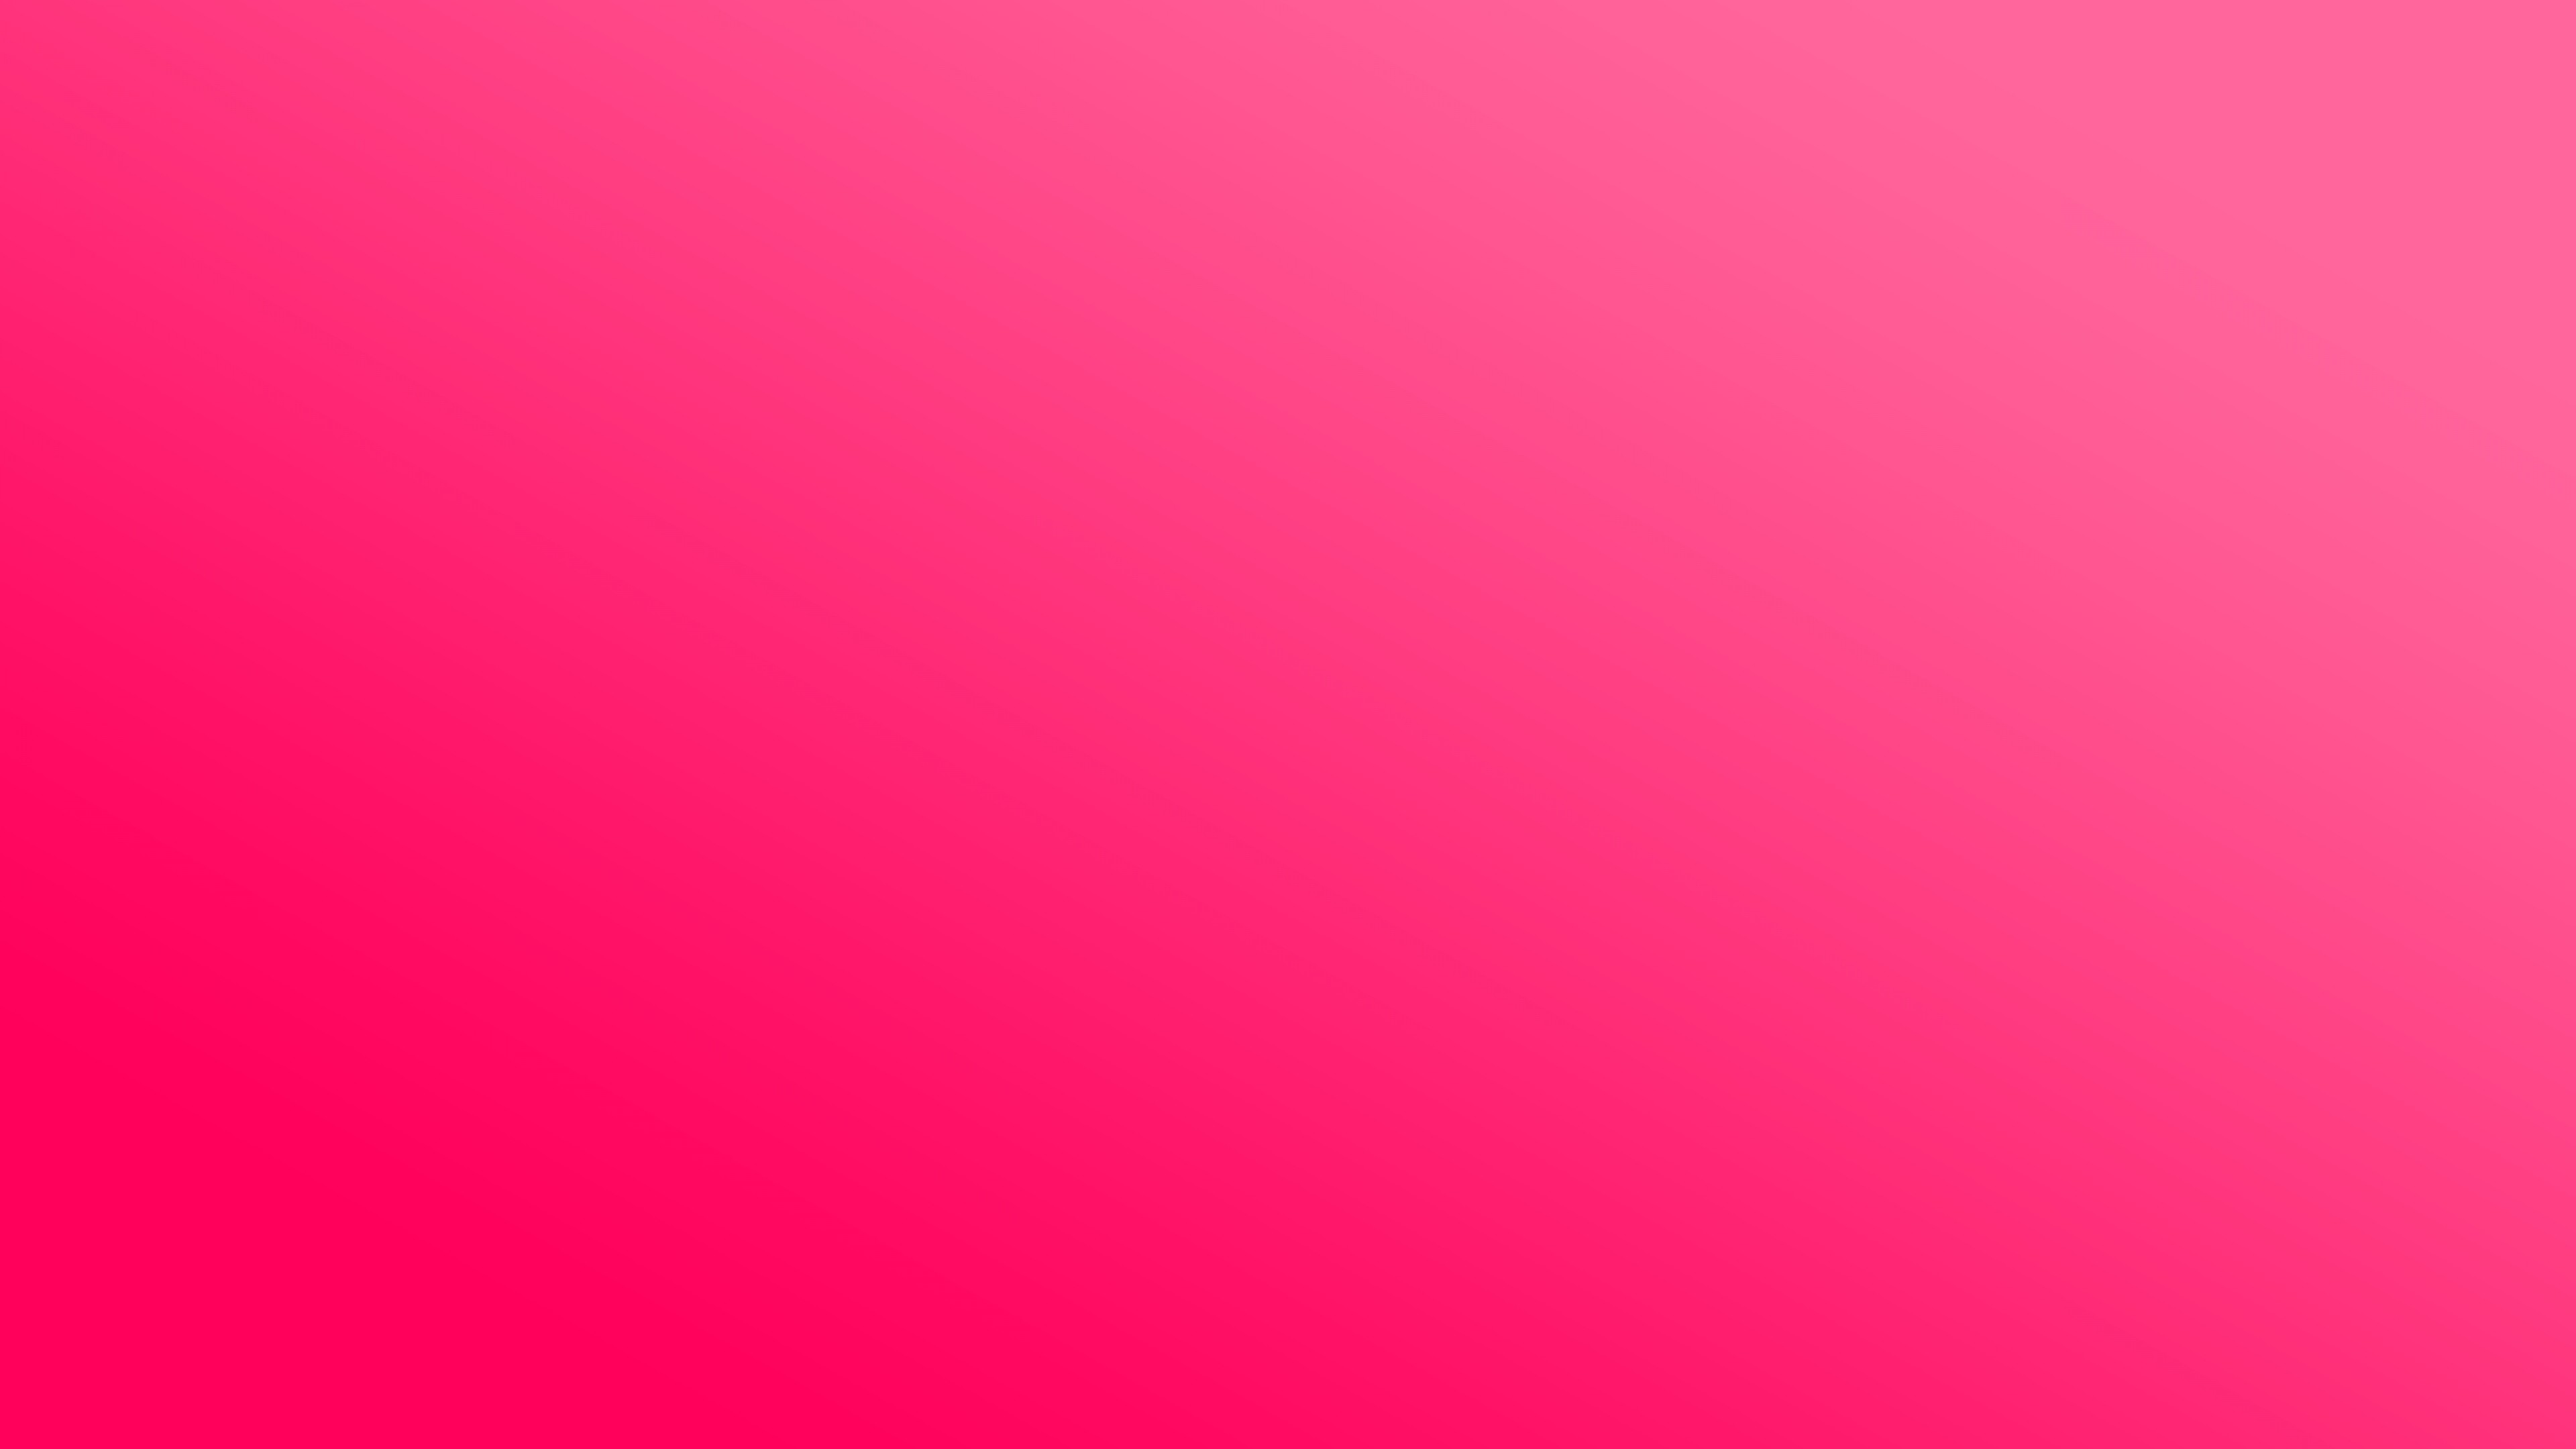 3840x2160 4K Ultra HD Pink Wallpapers HD, Desktop Backgrounds  .